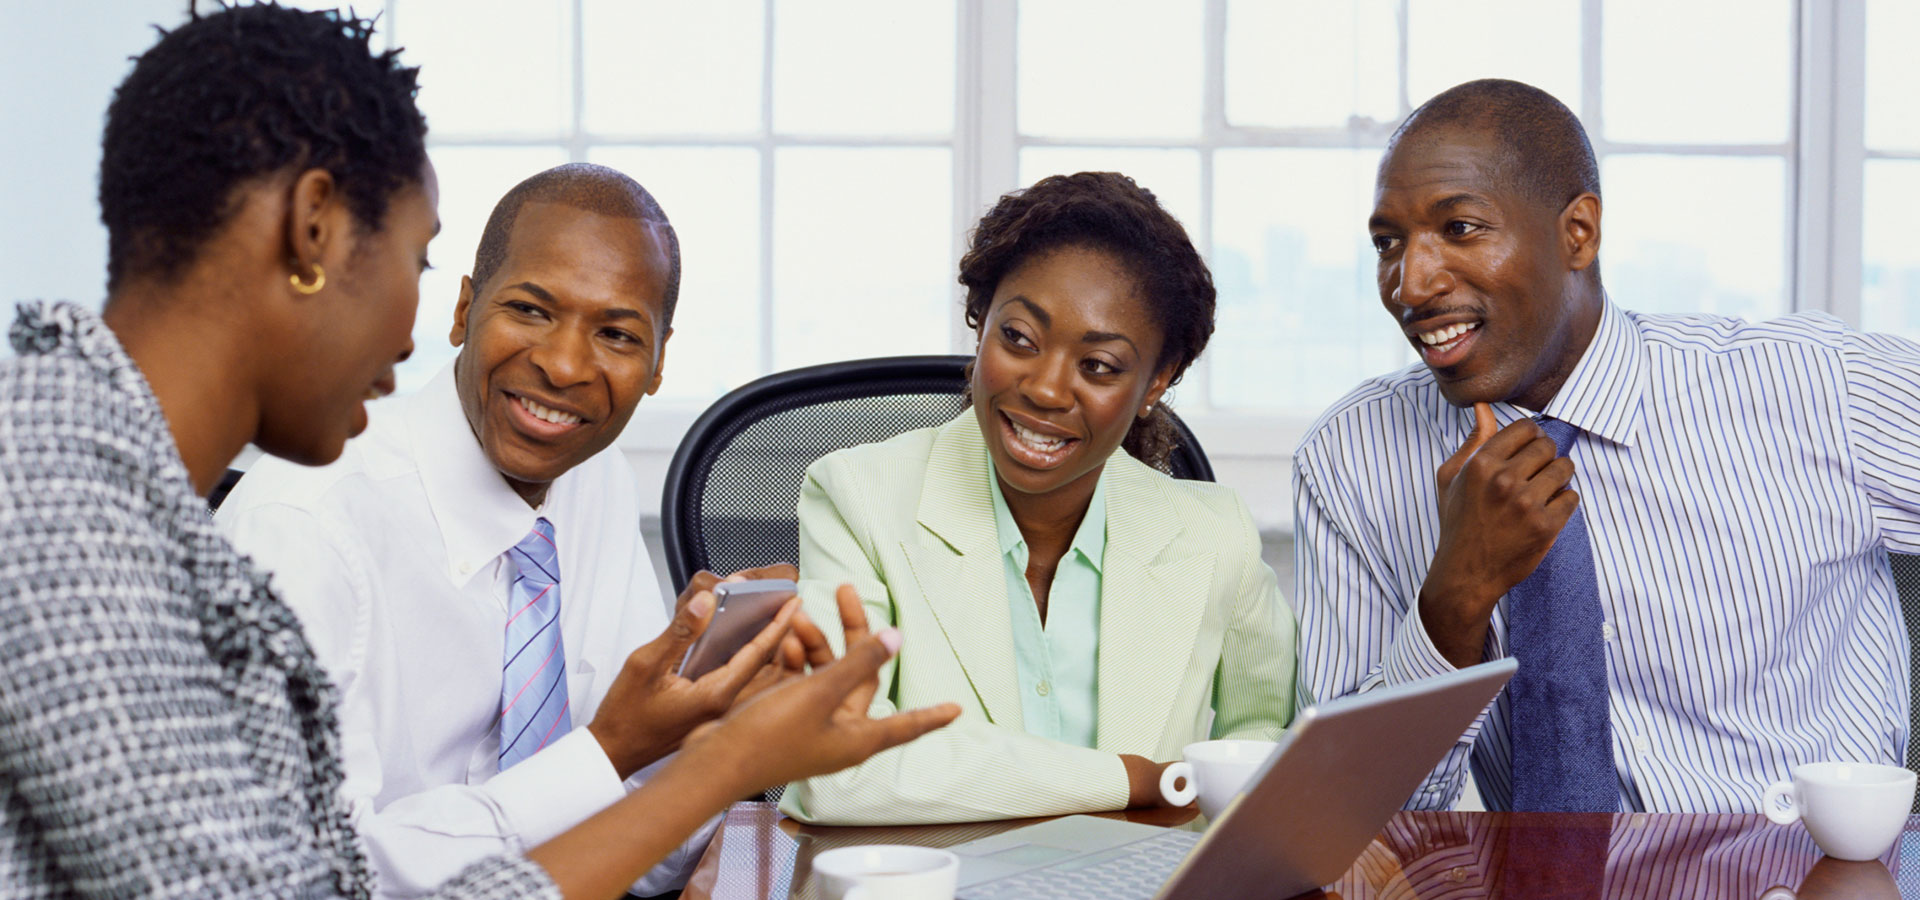 how to get a job easily in kenya